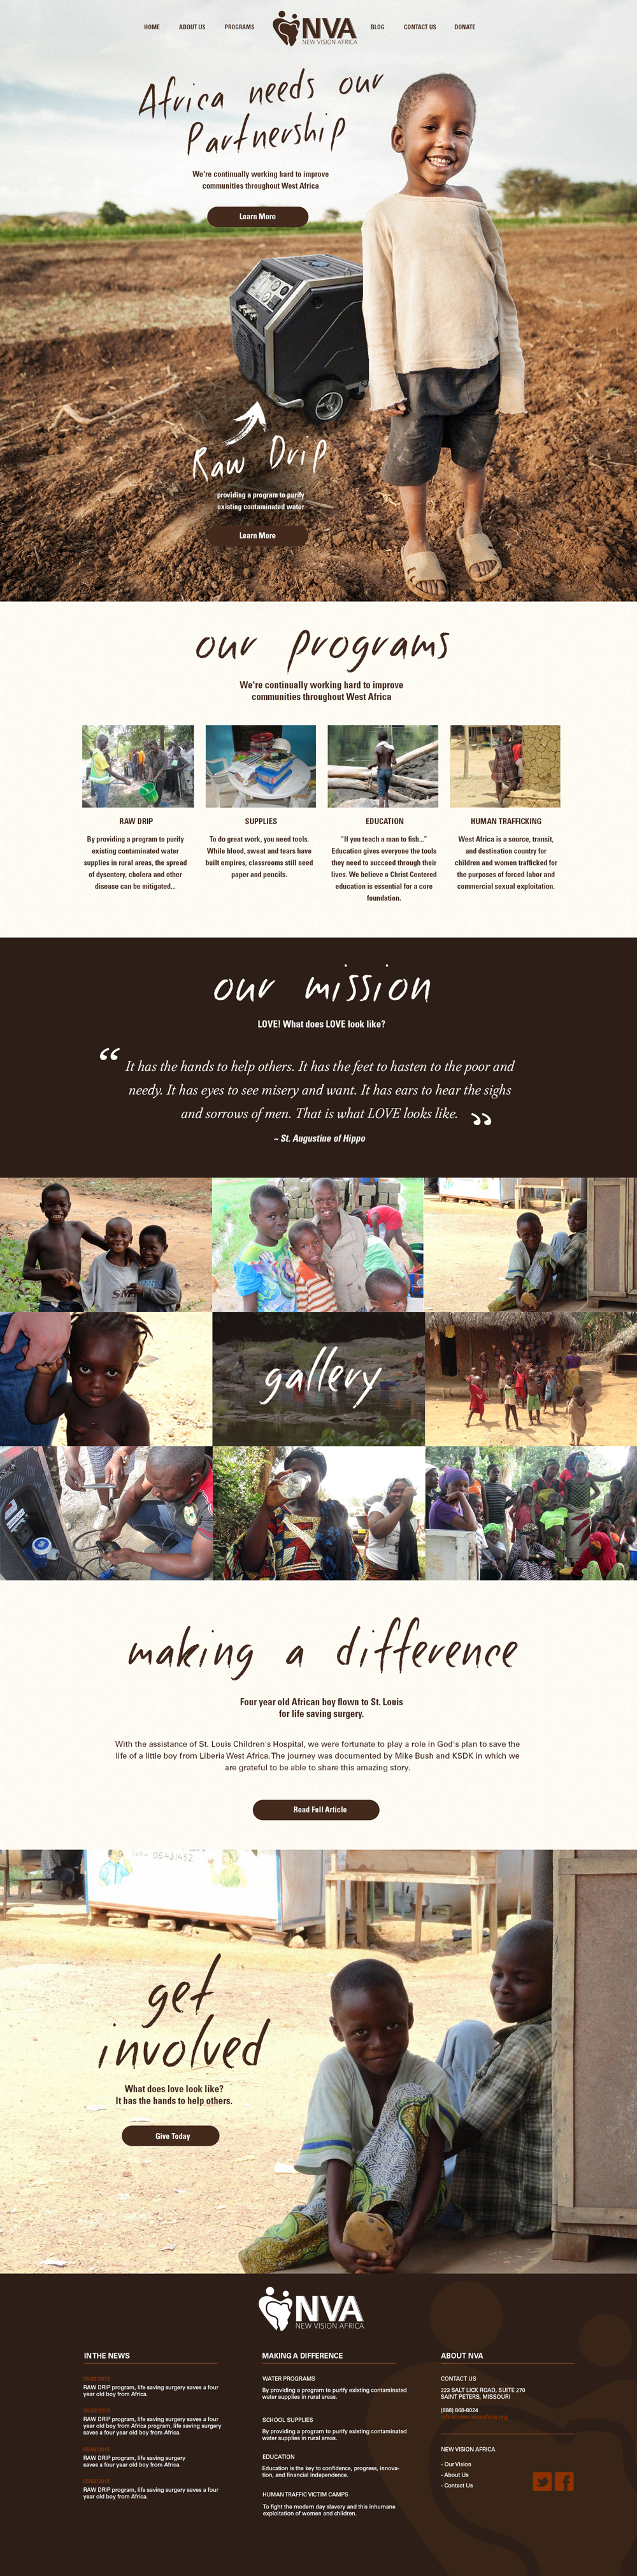 New Vision Africa